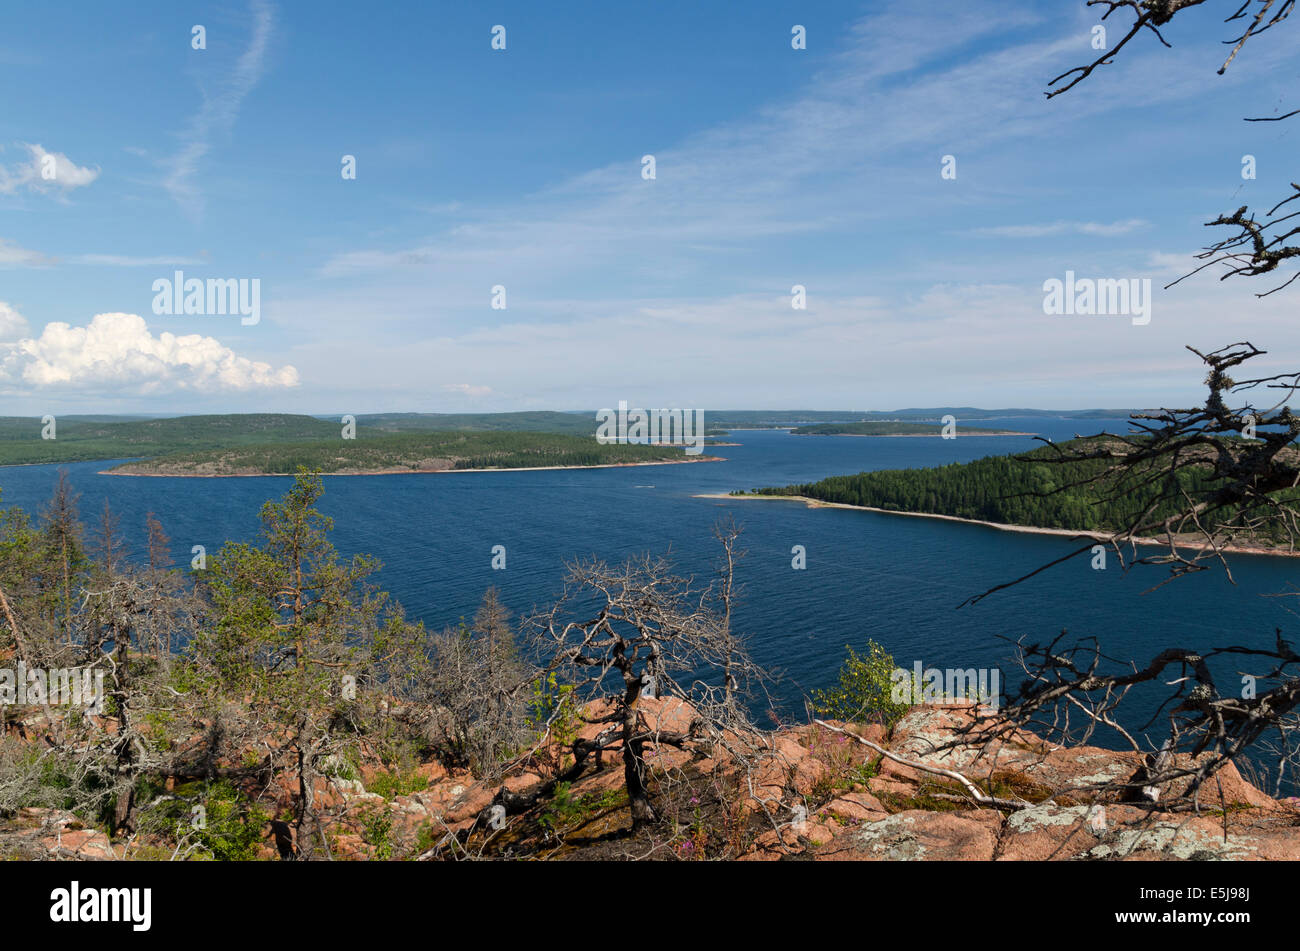 View from a mountain in the 'High Coast' - Stock Image